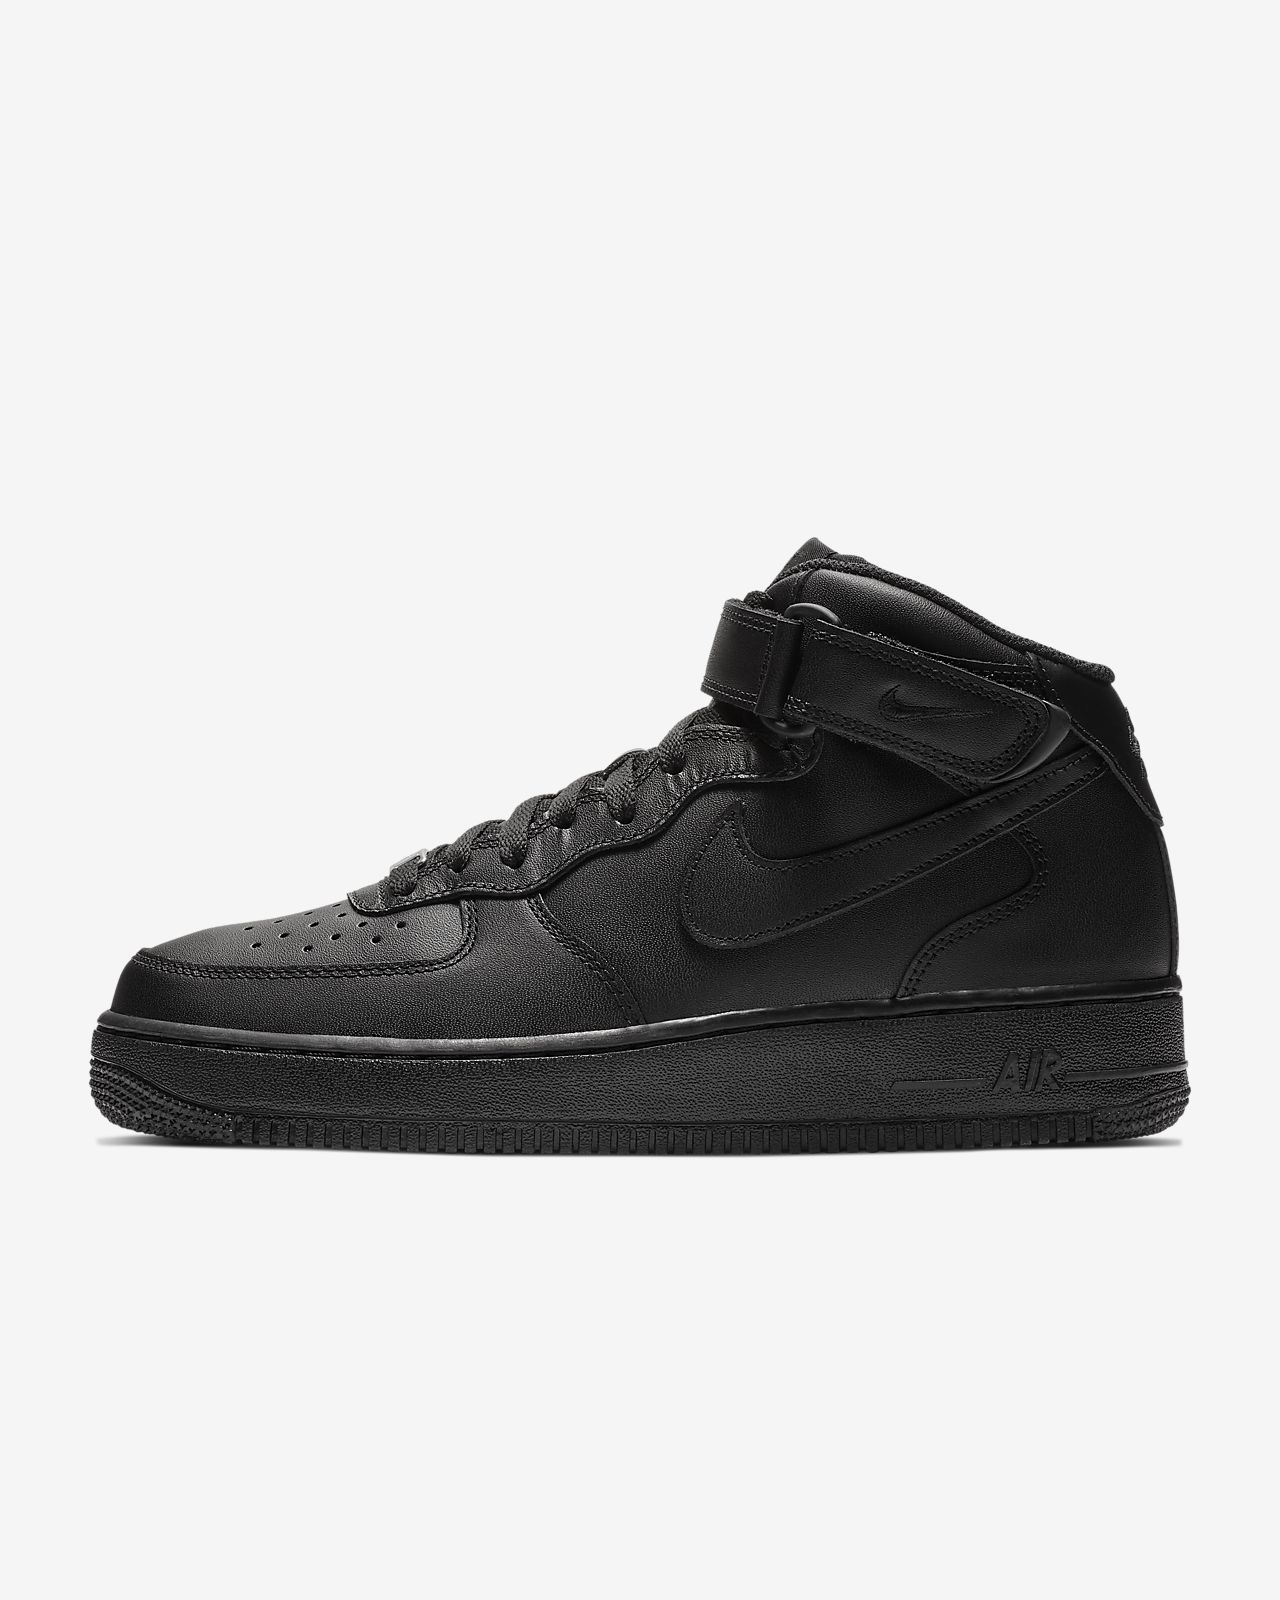 men's nike air force ones mids